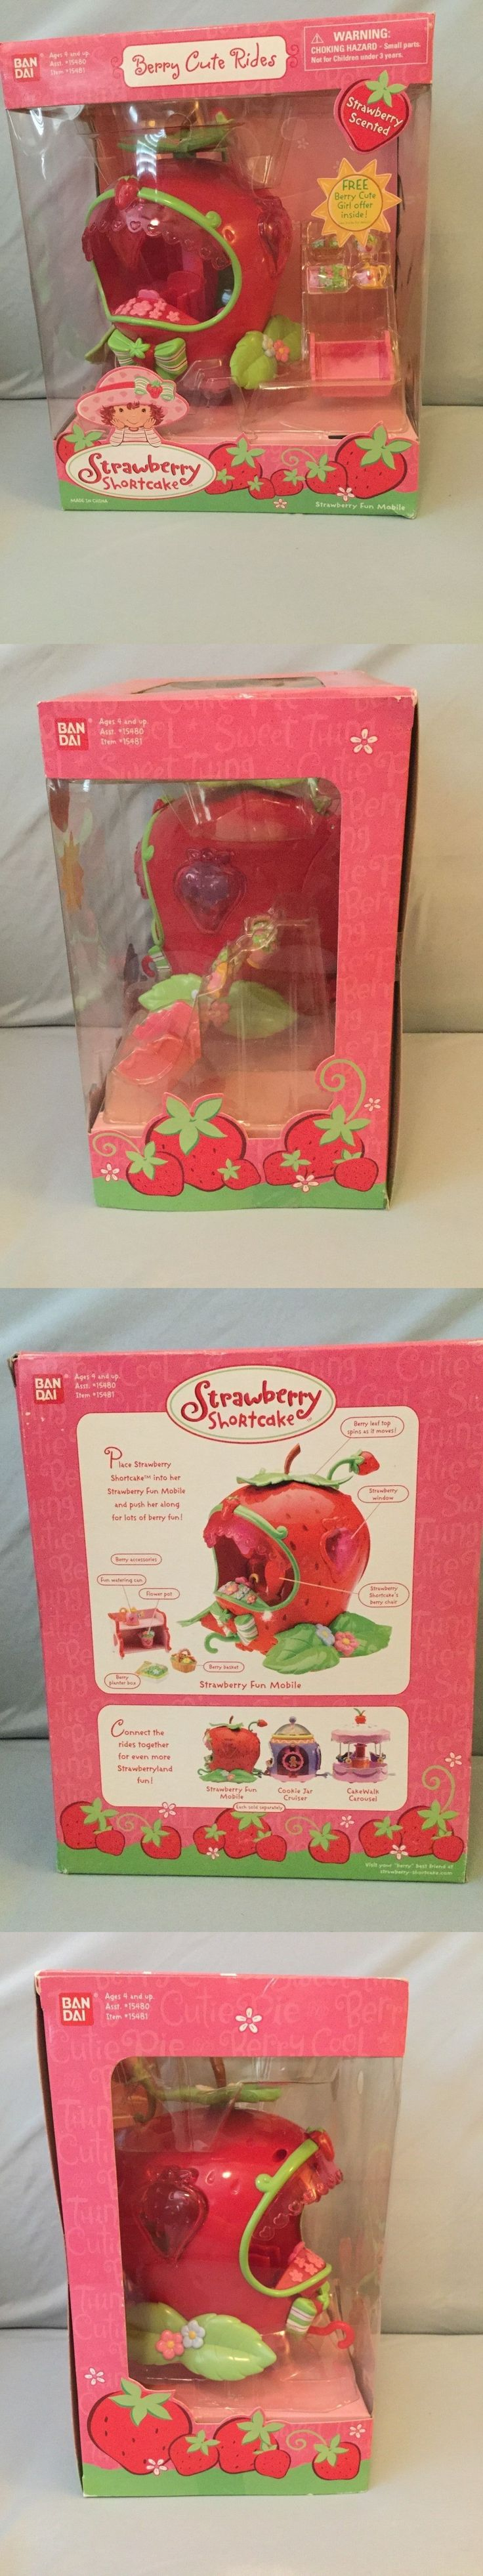 Strawberry Shortcake 146102: Strawberry Shortcake Berry Cute Rides Strawberry Fun Mobile Playset Bandai Toy -> BUY IT NOW ONLY: $38.99 on eBay!